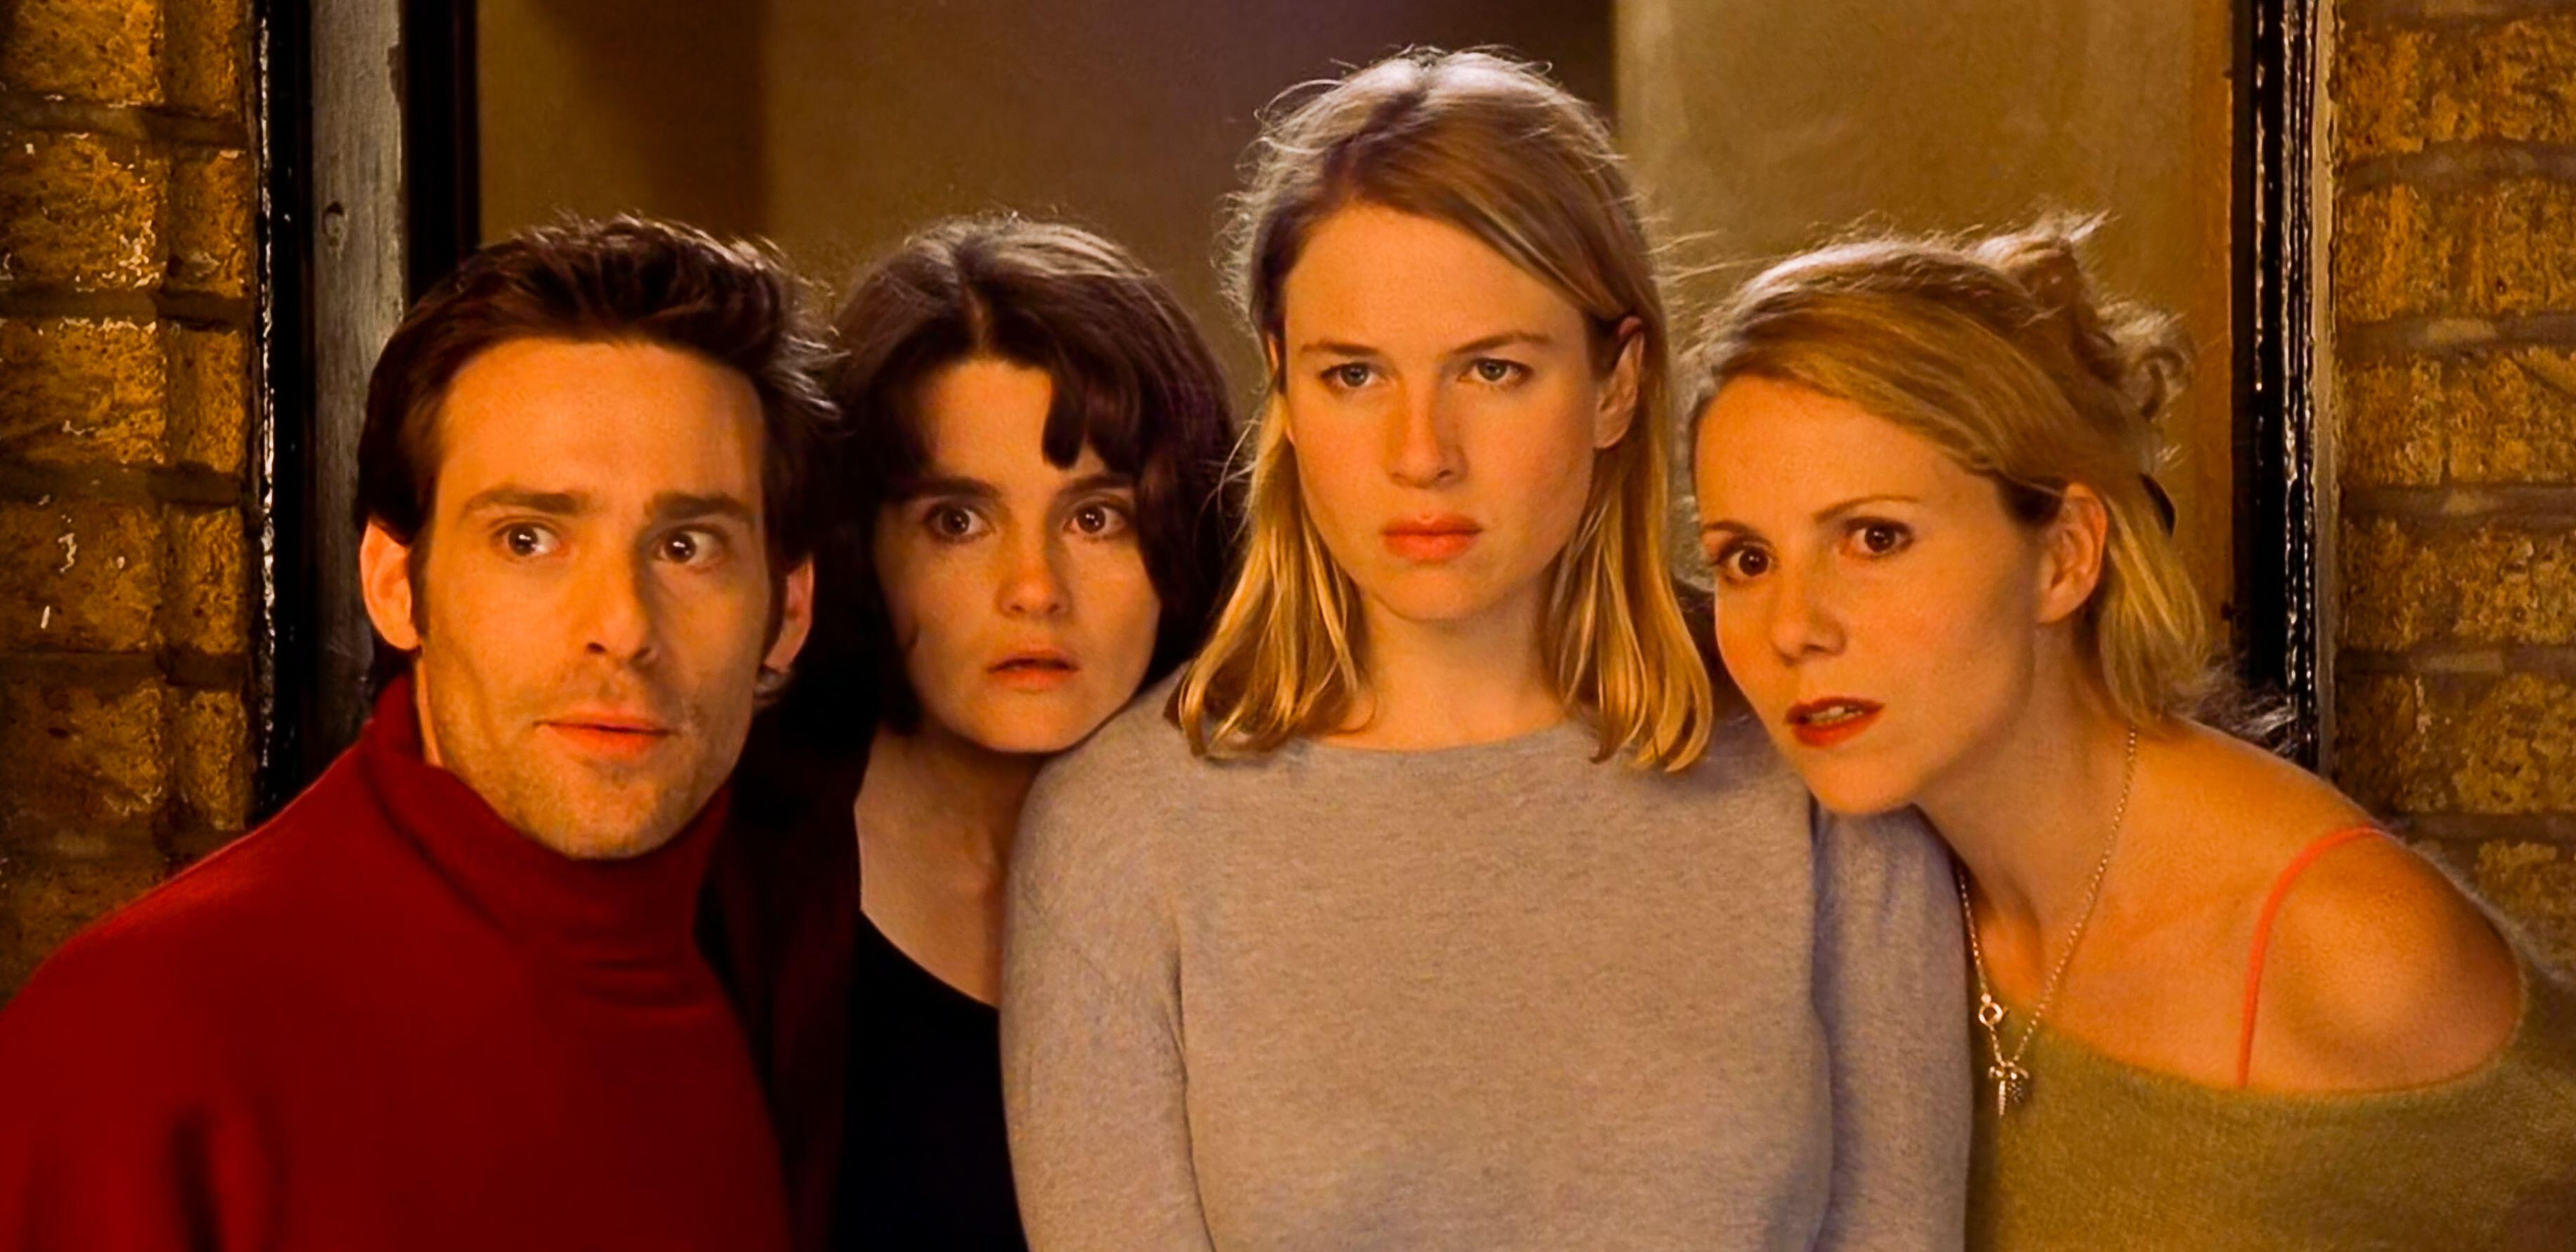 Sally Phillips (right) with co-stars Jamies Callis, Shirley Henderson and Renee Zellweger in Bridget Jones's Diary (Miramax/Alamy/PA)